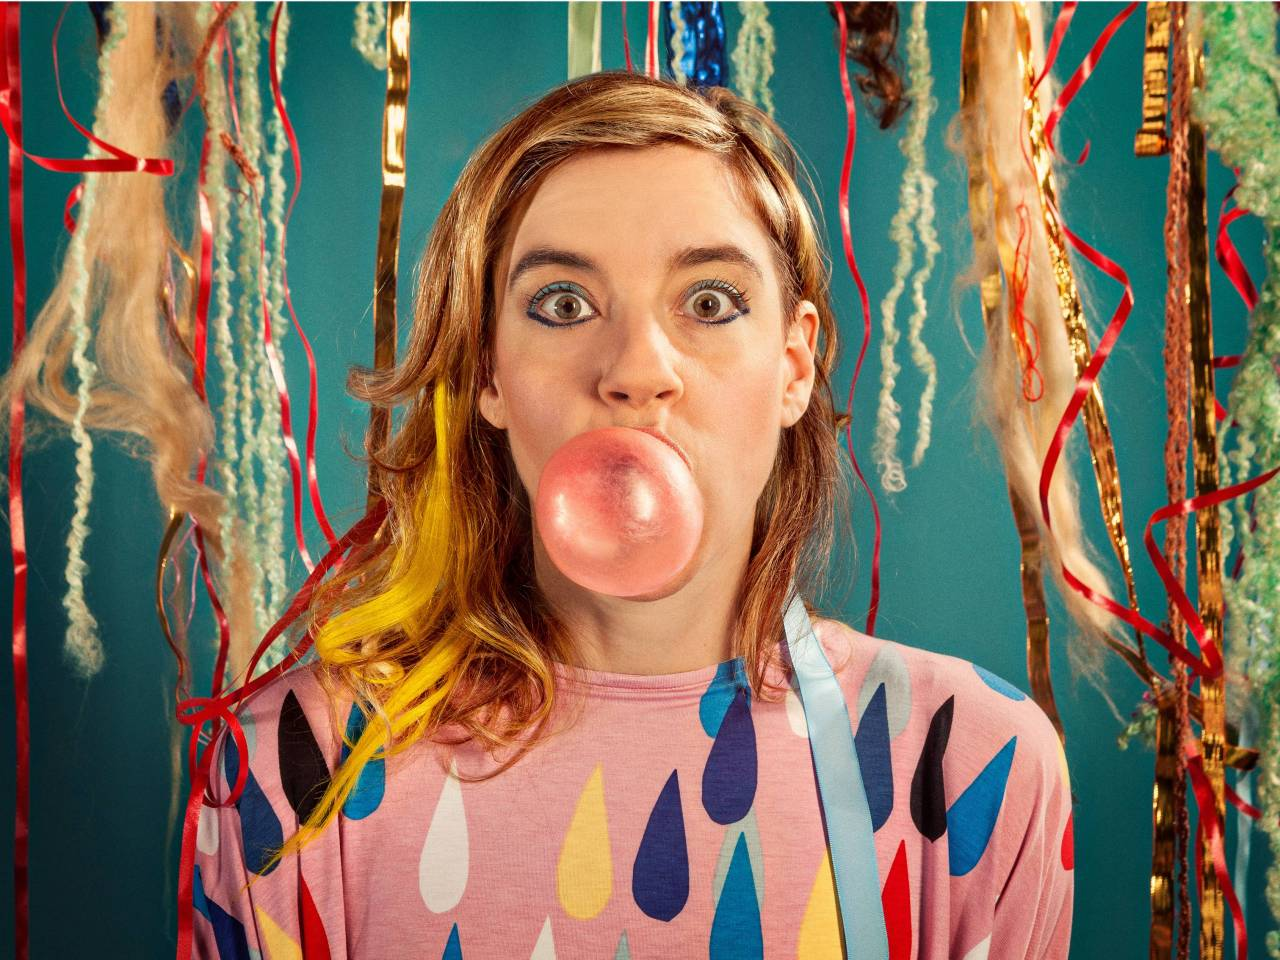 tUnE-yArDs: Without an open Internet I couldn't have become a musician